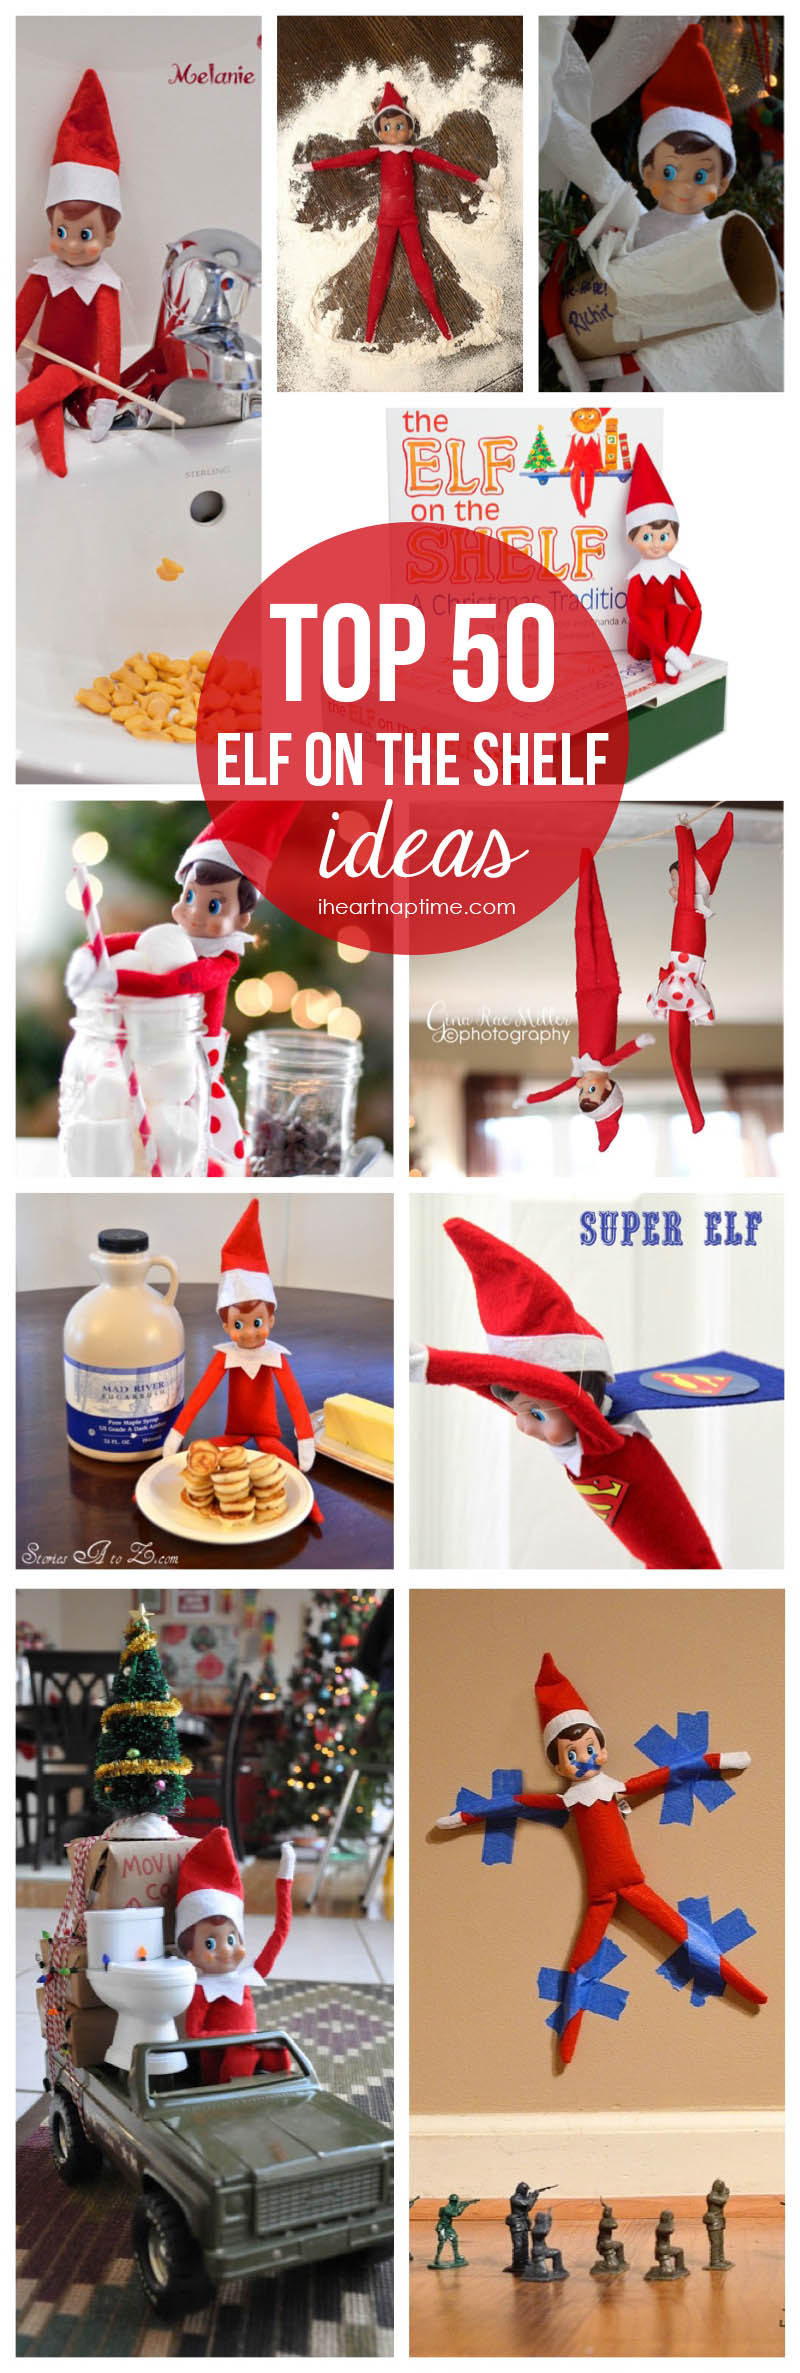 Elf-on-the Shelf Idea